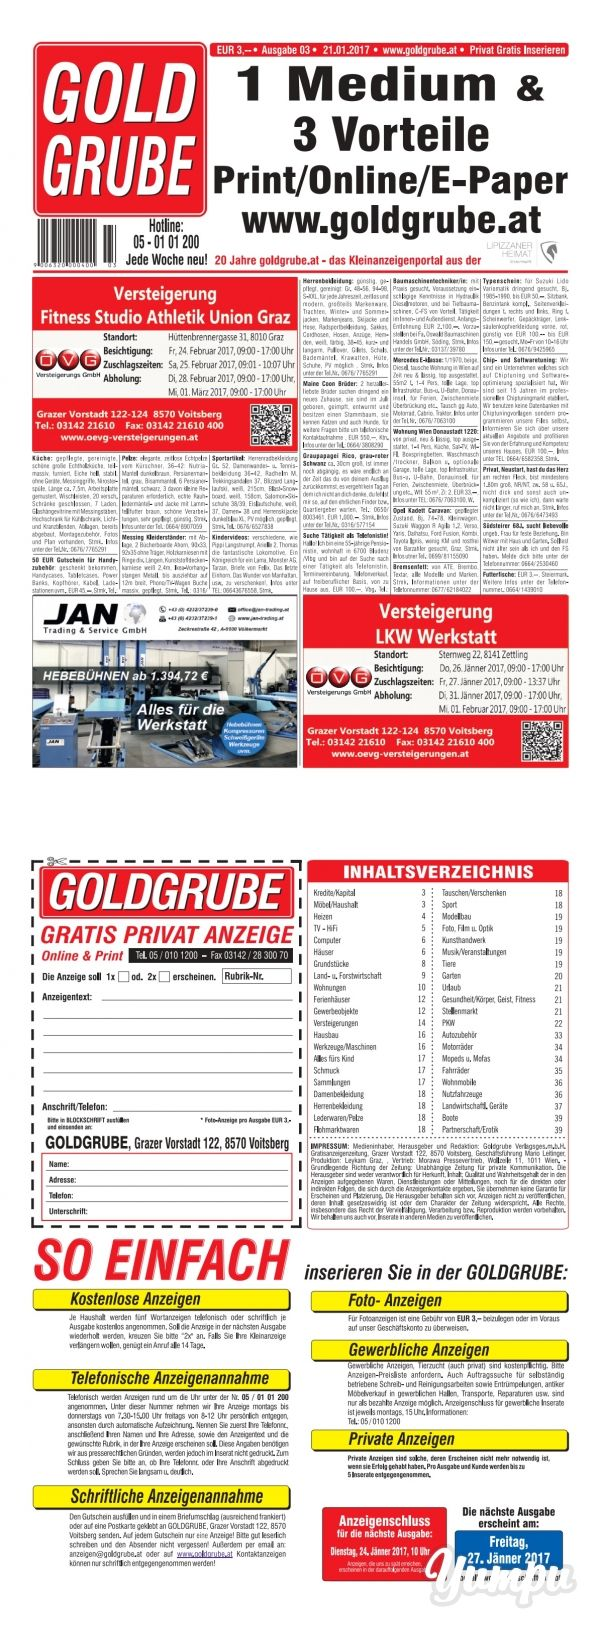 Goldgrube Ausgabe 3/17 - Magazine with 48 pages: Privat Gratis Inserieren auf www.goldgrube.at